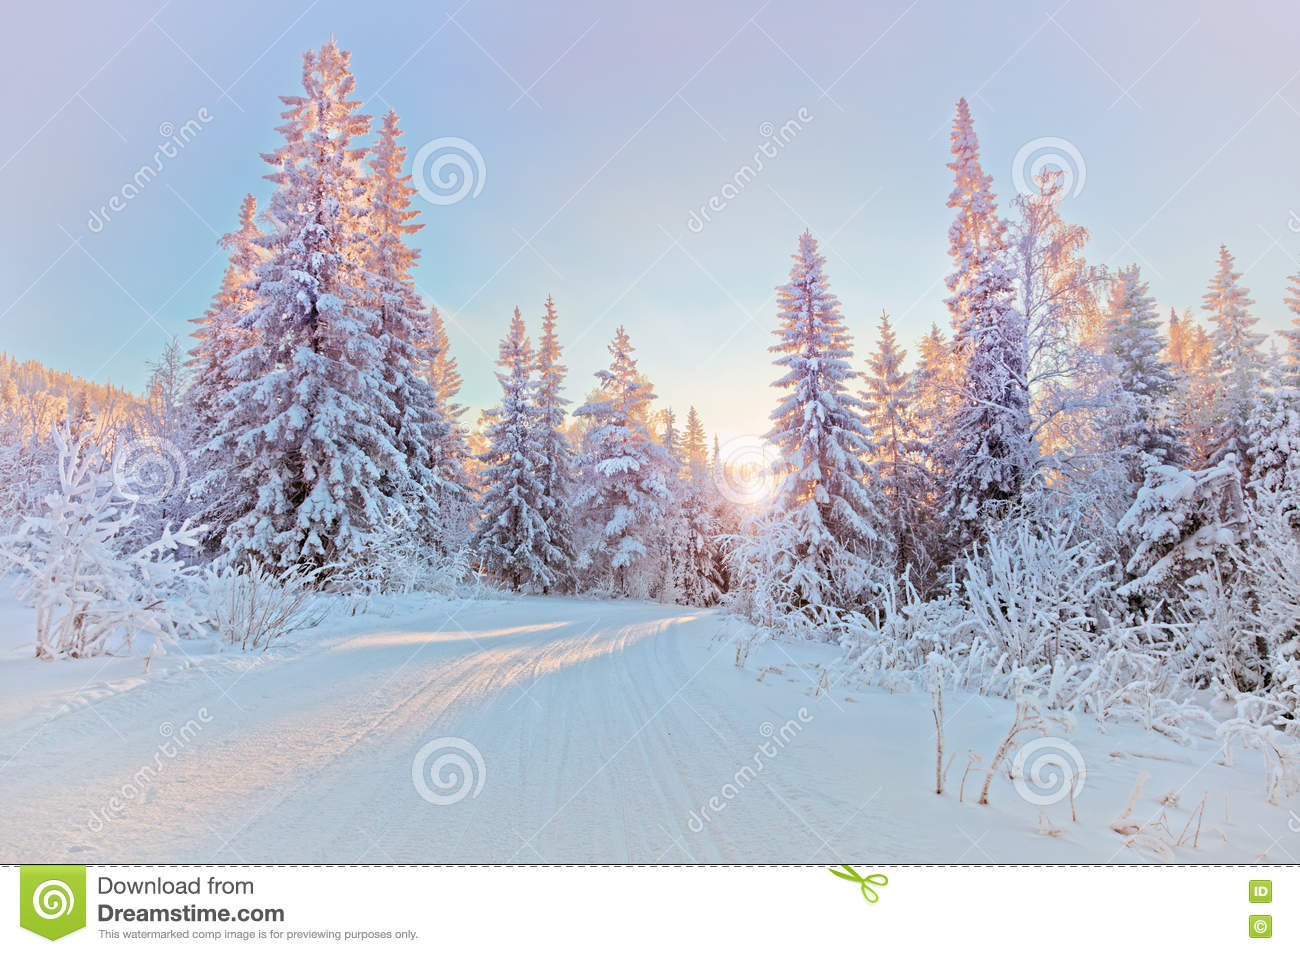 Download Winter landscape stock photo. Image of colorful, illumination - 28316948